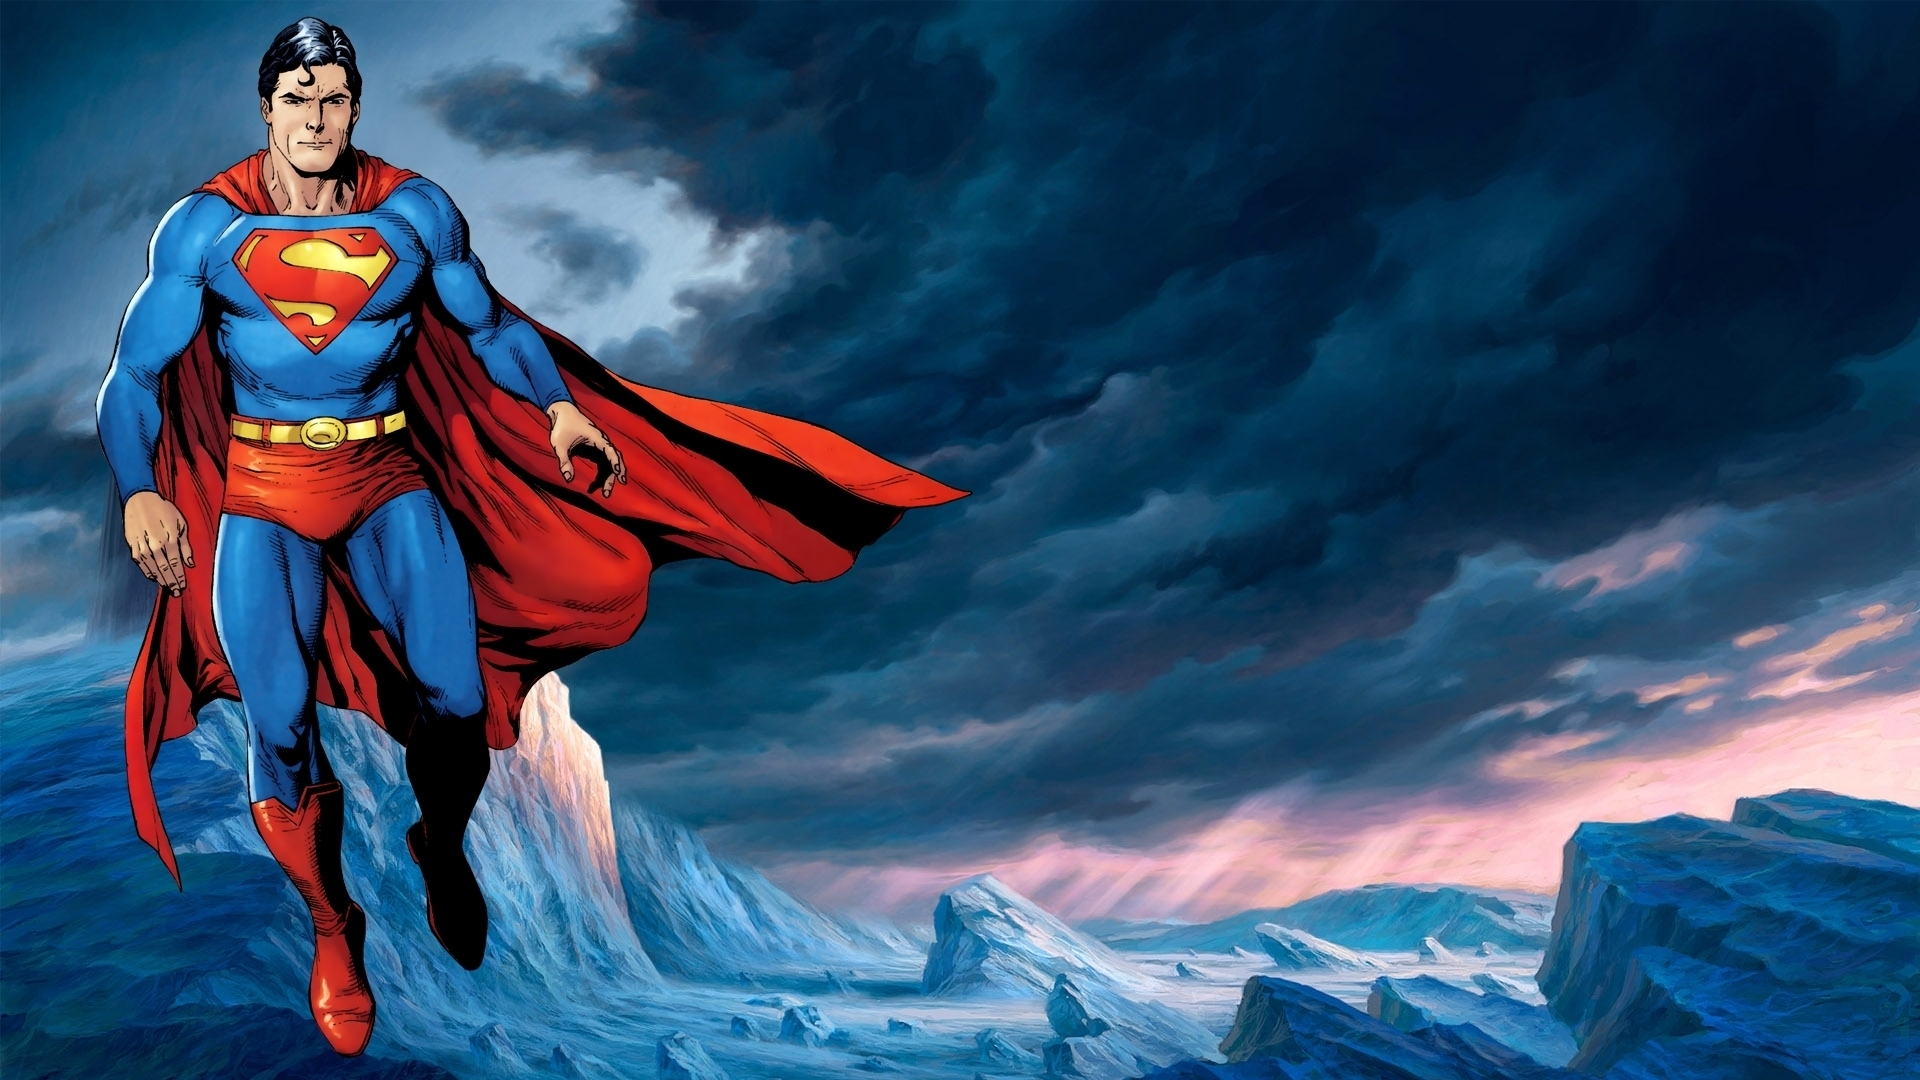 Superman Cartoon Hd Wallpaper